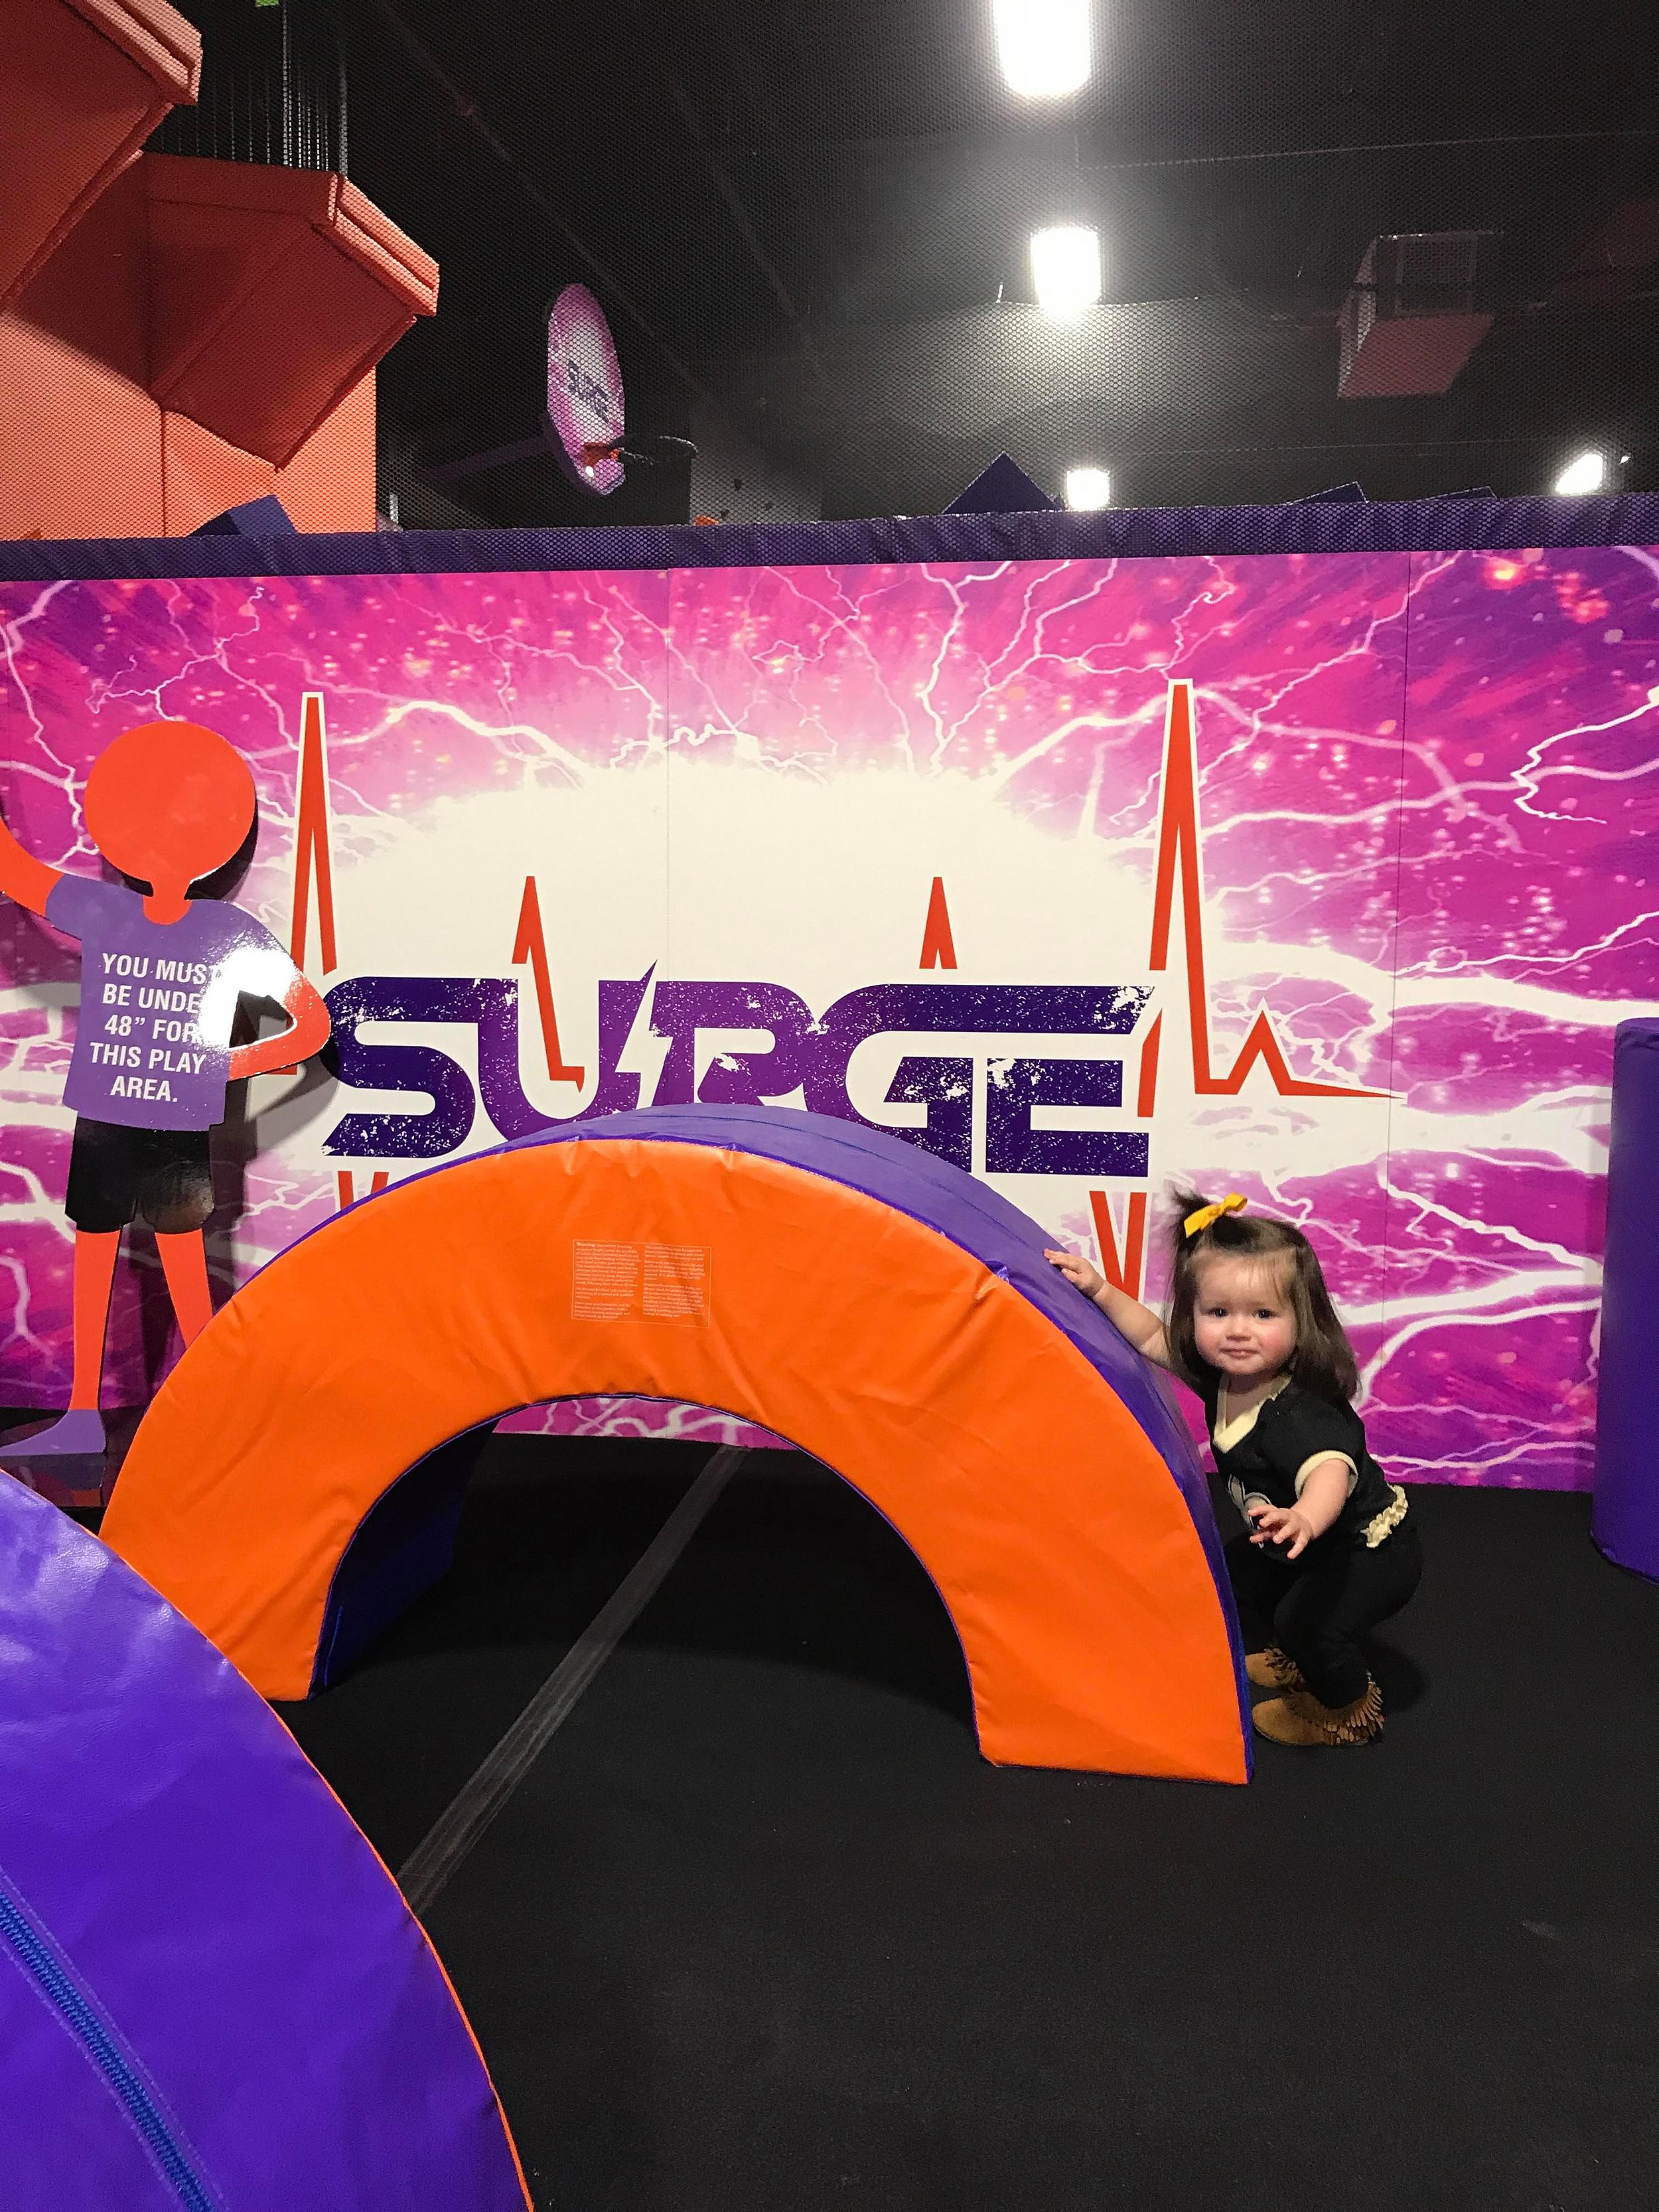 Surge Entertainment Center By Drew Brees Set To Open This